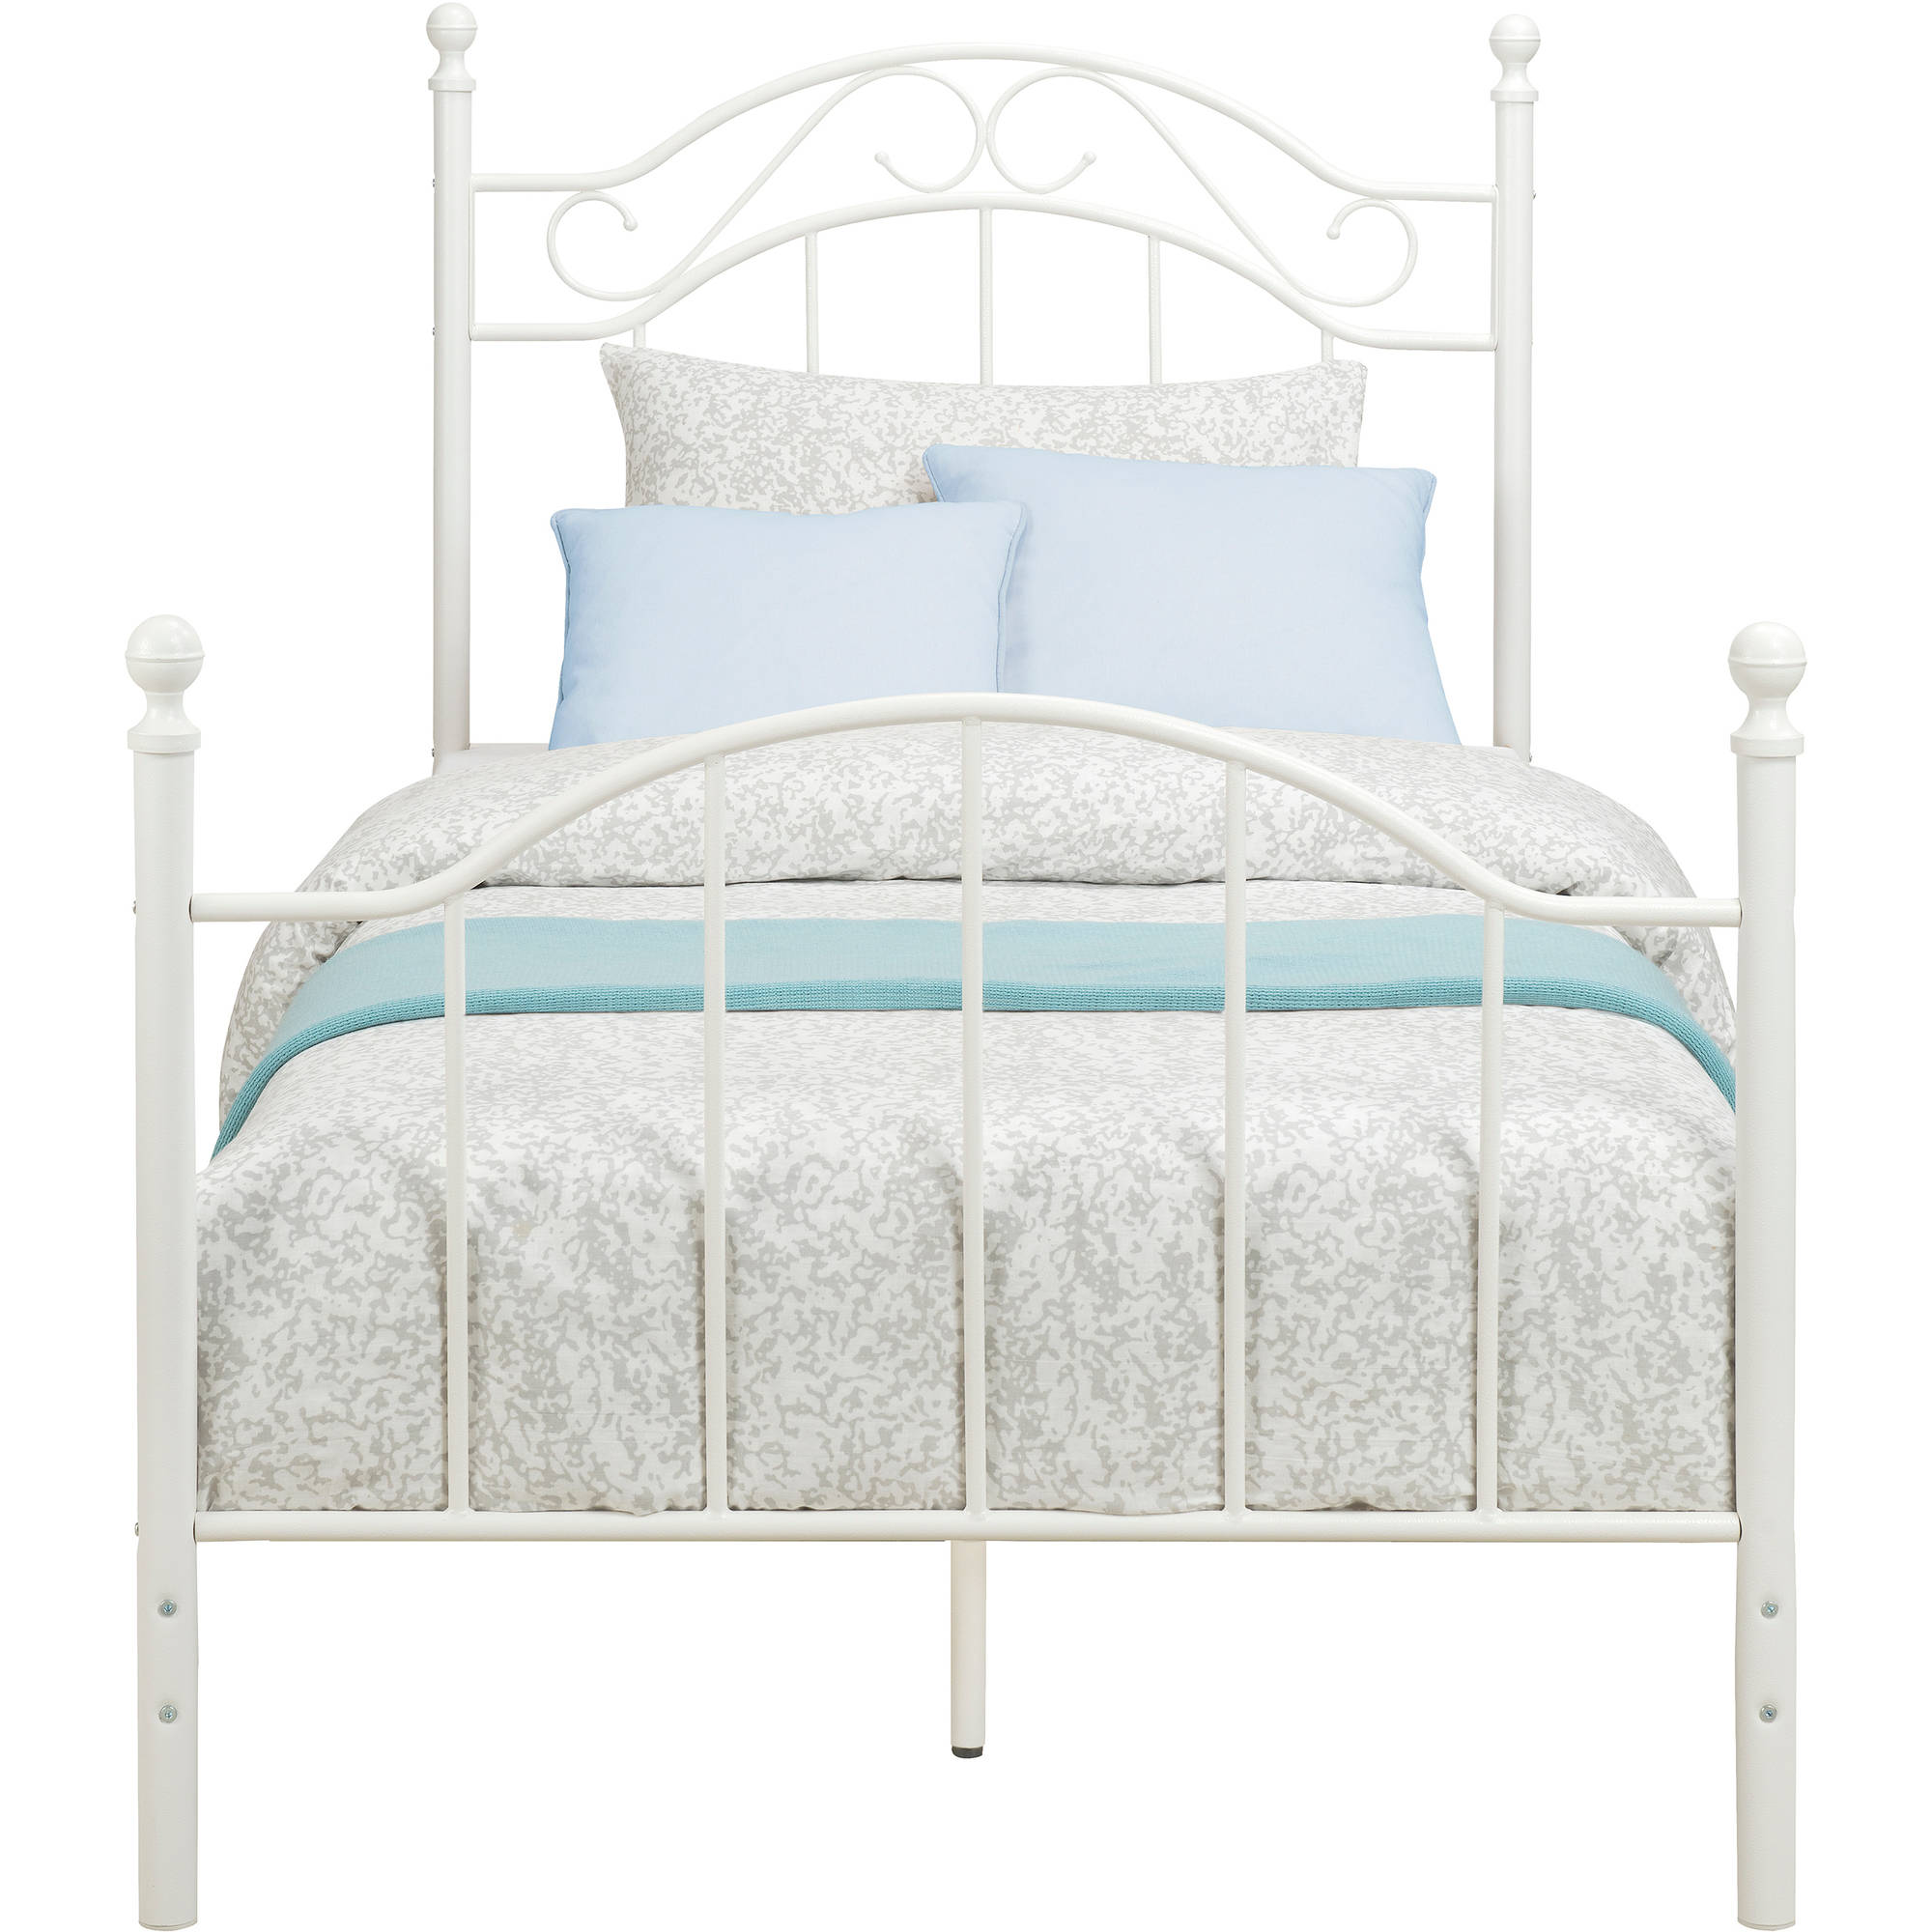 Twin Metal Bed Daybeds Frame Footboard Headboard Girls